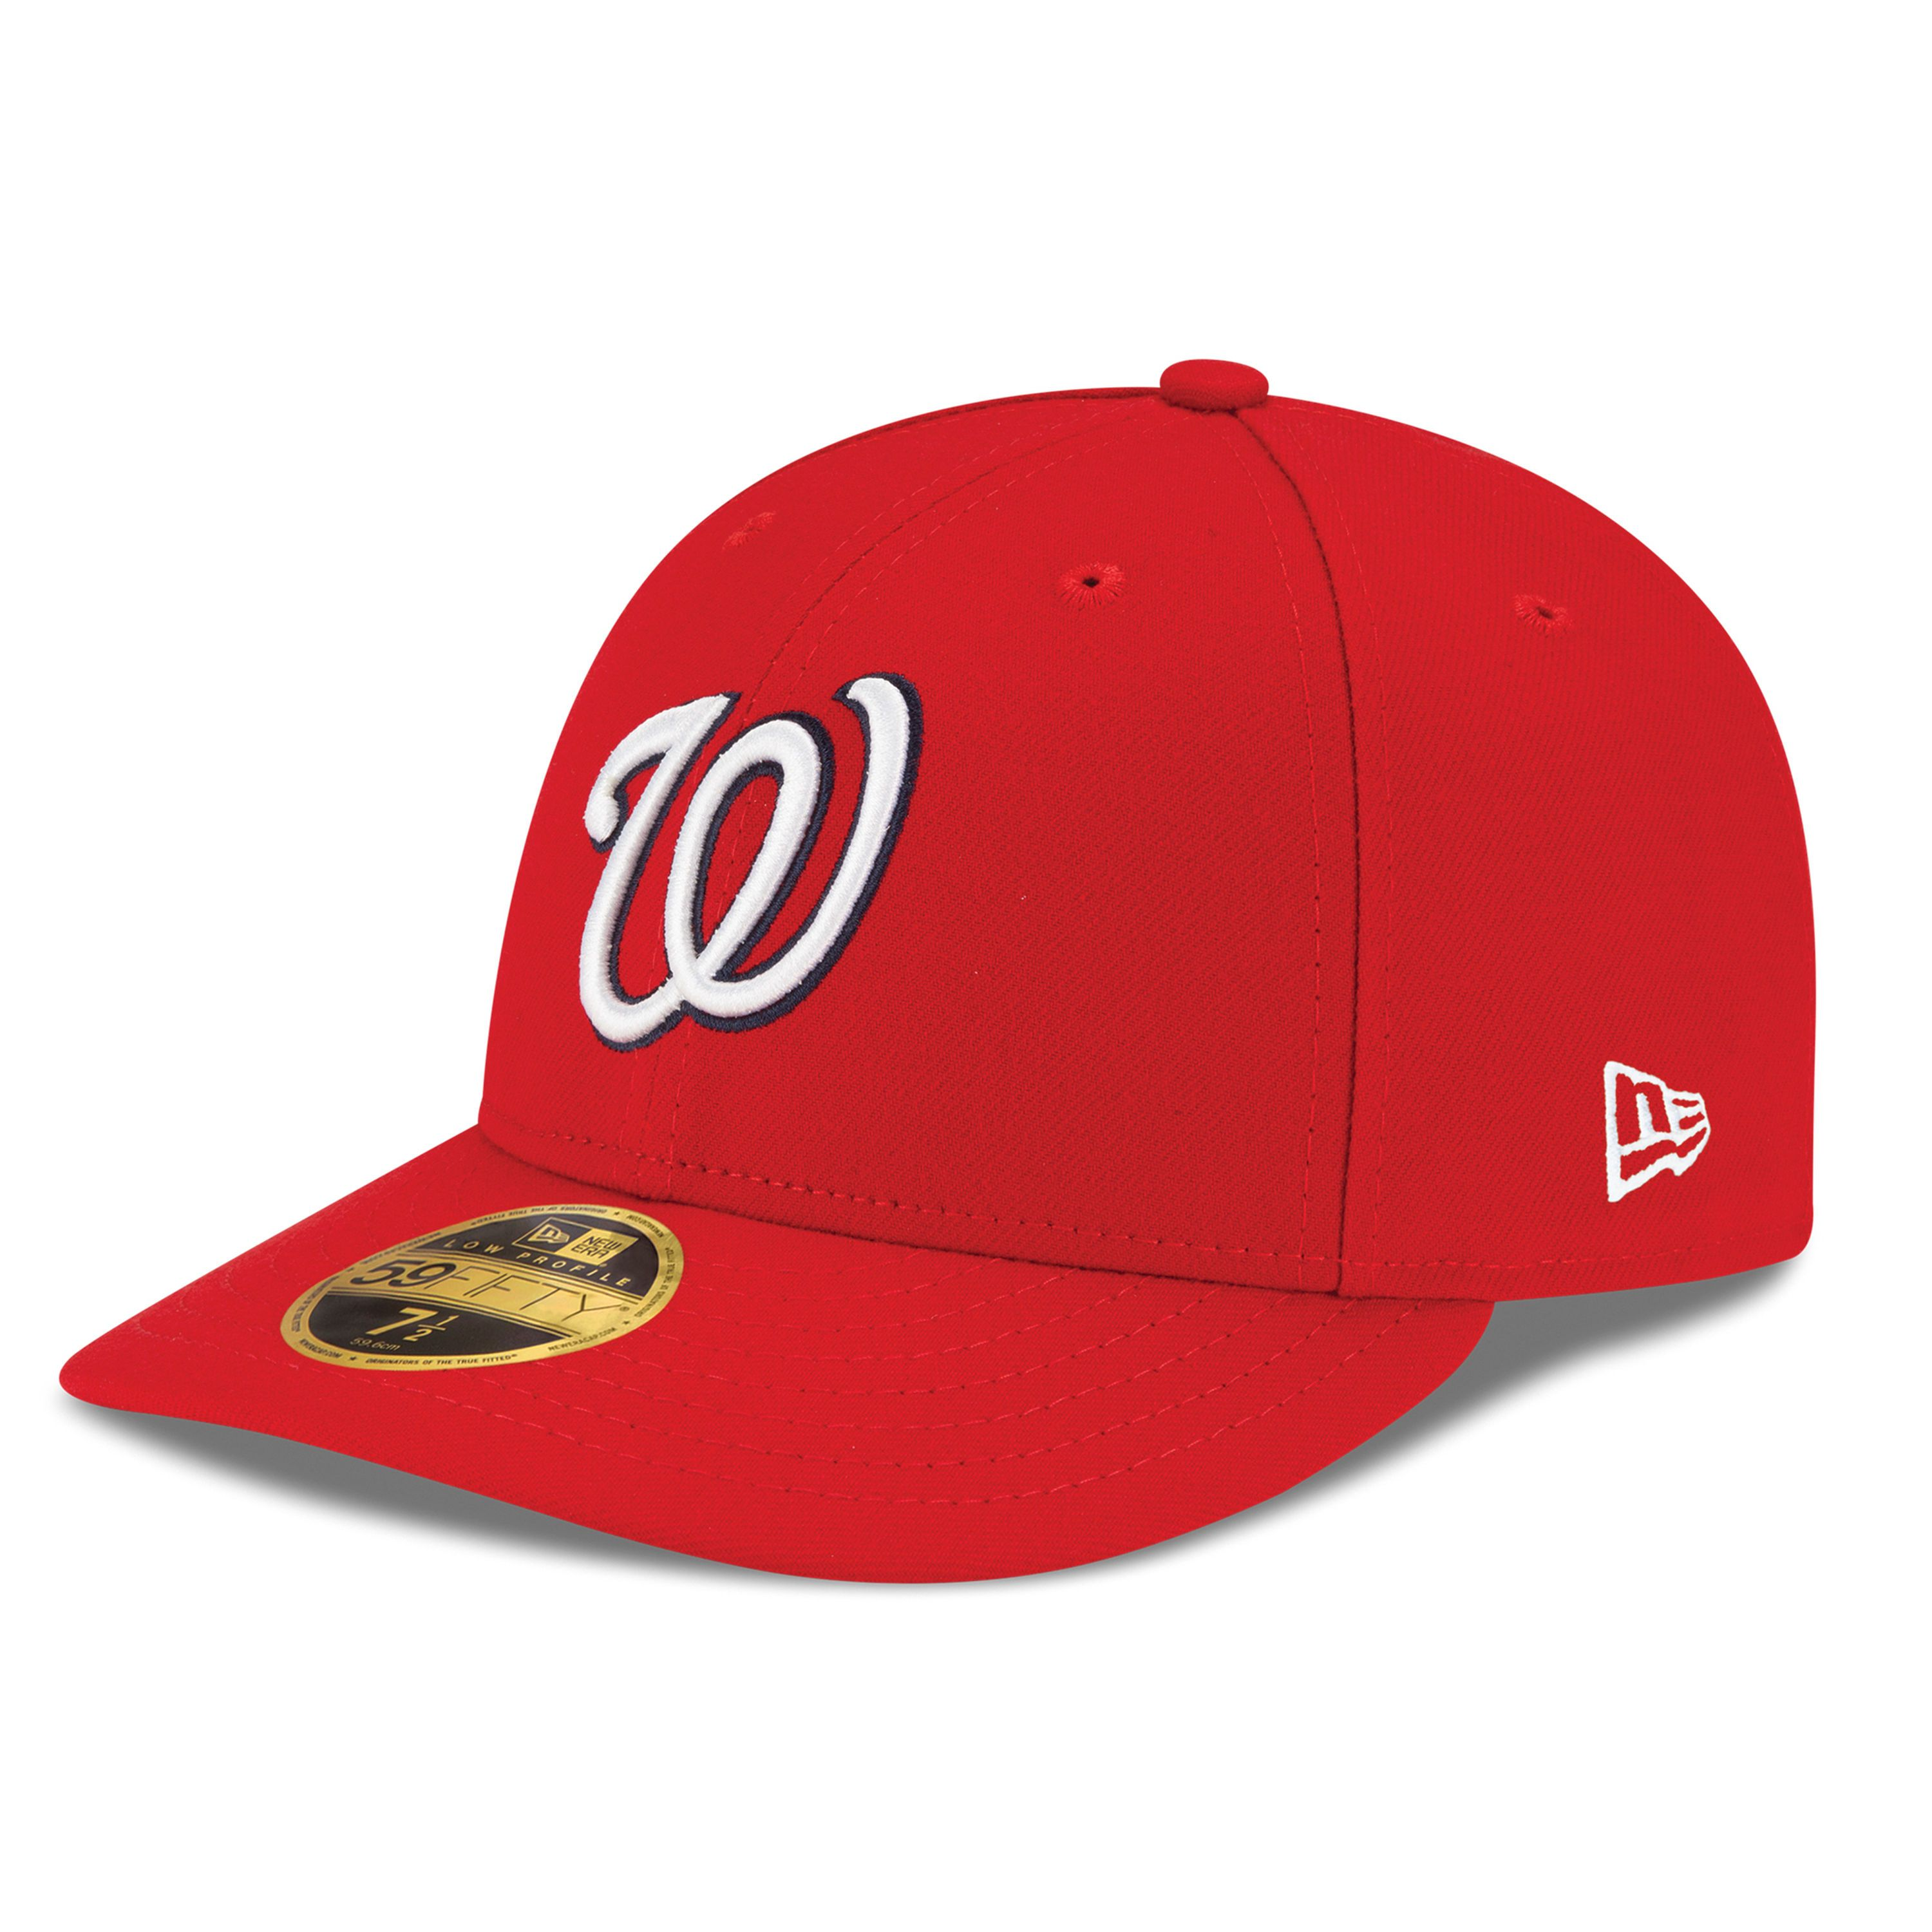 Men S Washington Nationals New Era Red Game Authentic Collection On Field Low Profile 59fifty Fitted Hat Sombreros Y Gorras Washington Nationals Gorras